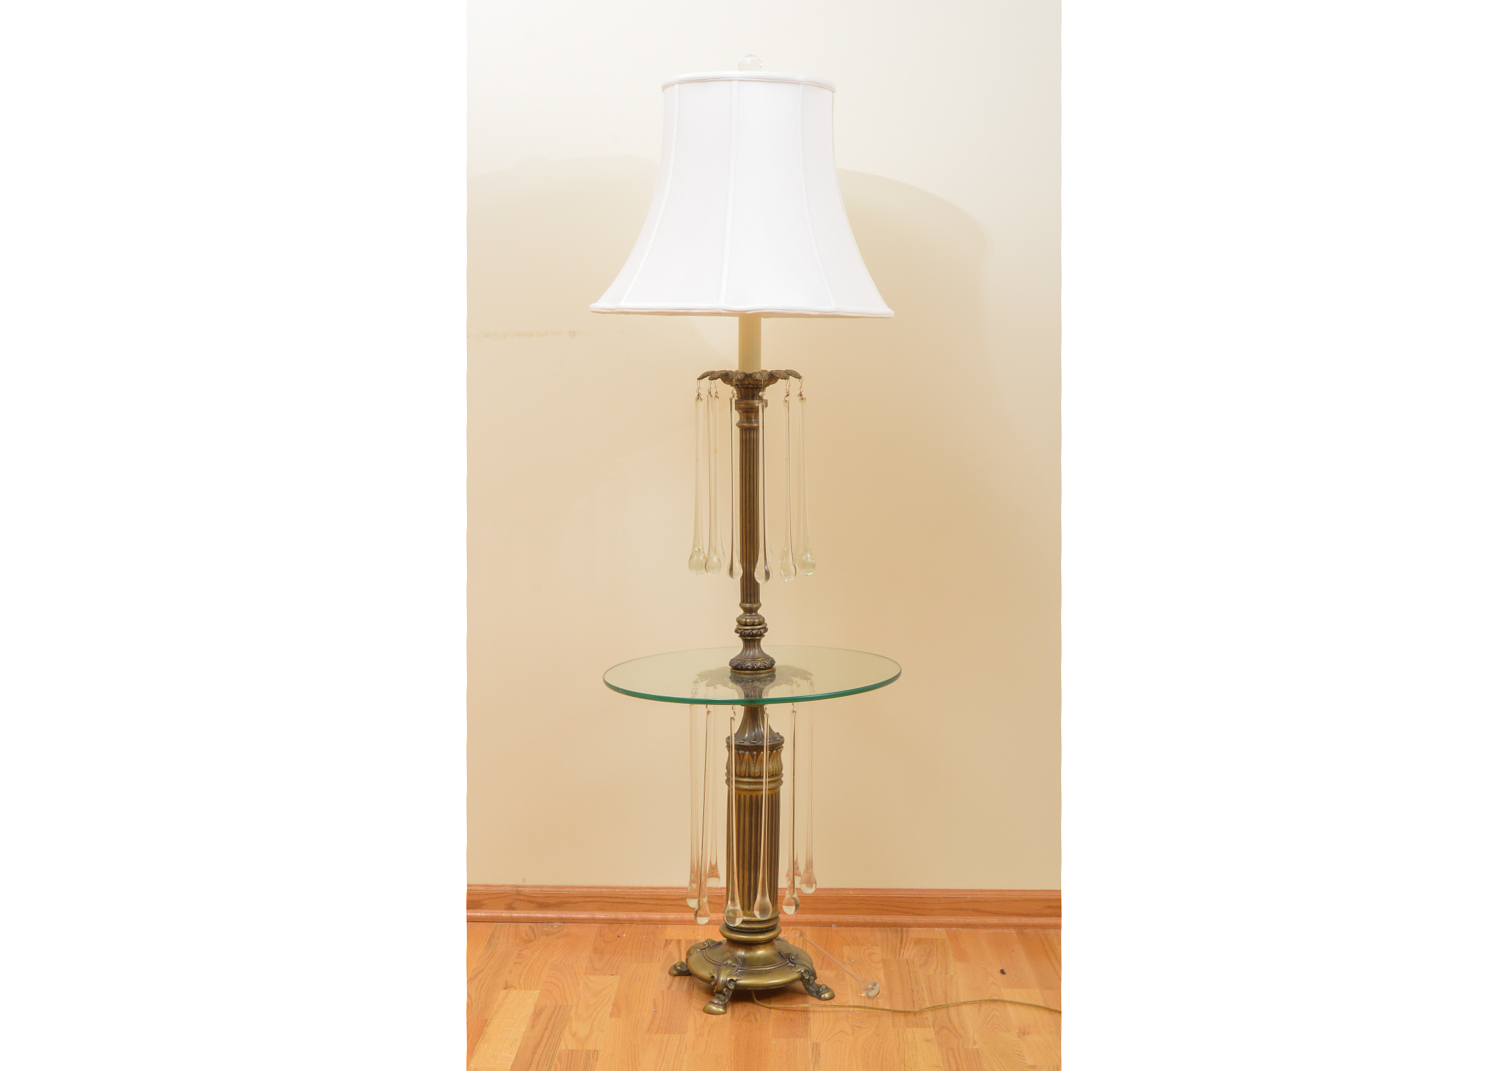 Vintage Floor Lamps Retro Table Lamps Antique Lighting in Mid